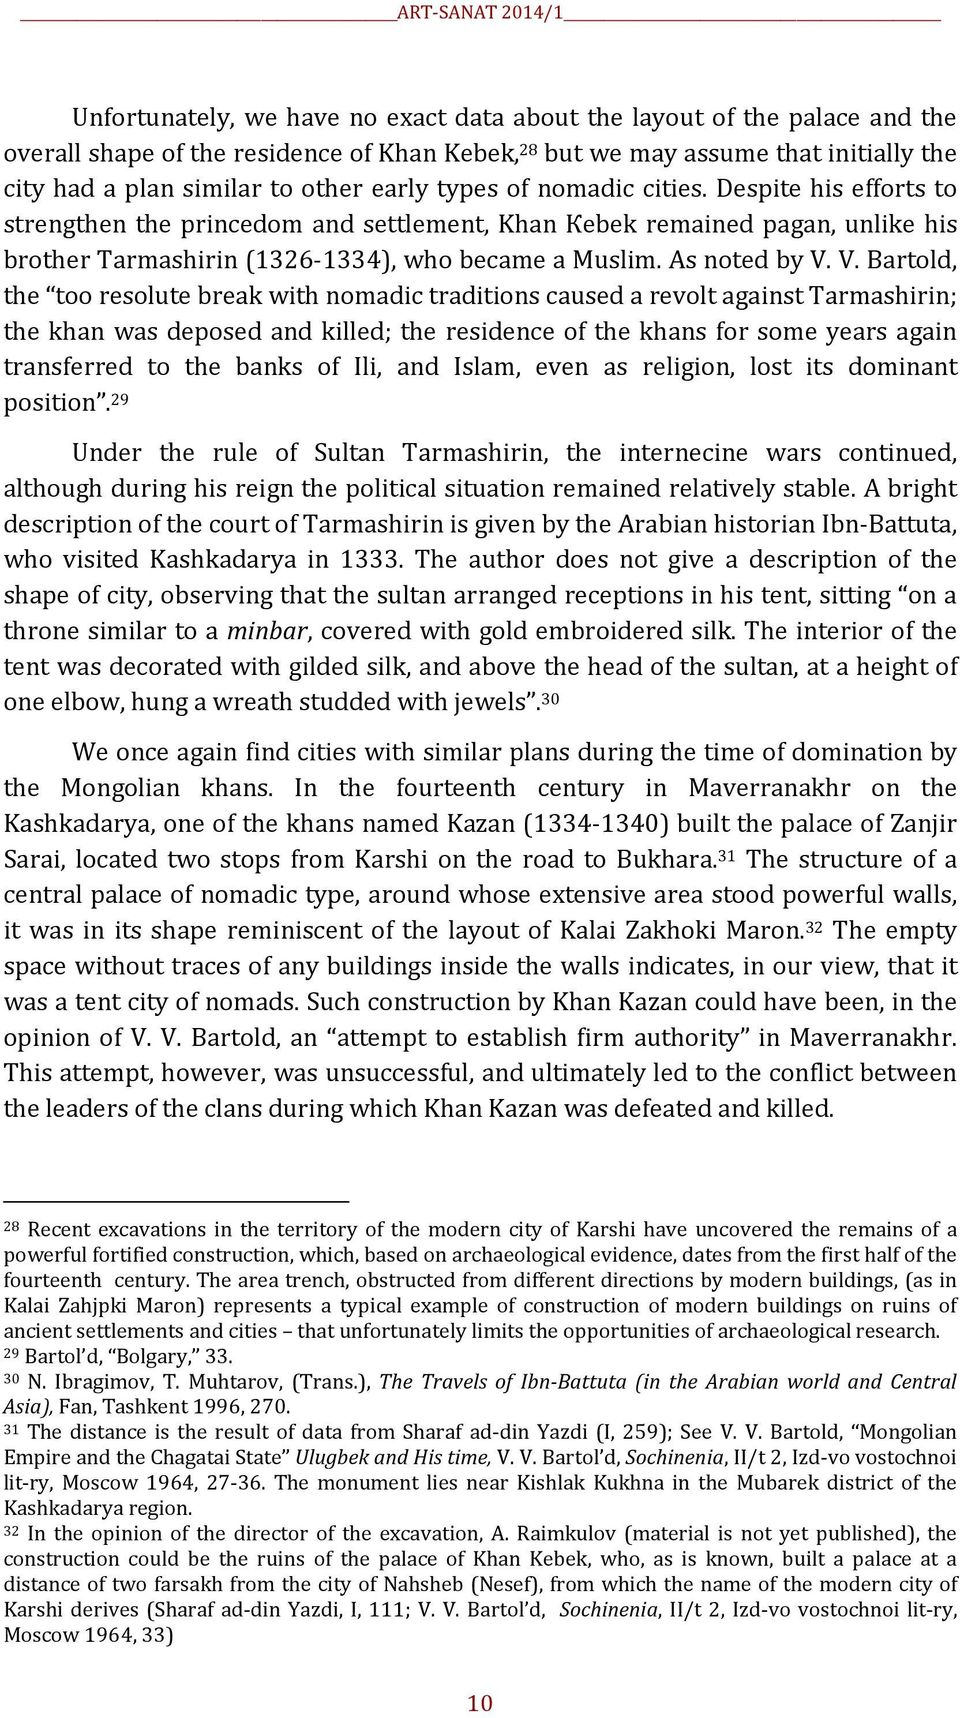 Despite his efforts to strengthen the princedom and settlement, Khan Кebek remained pagan, unlike his brother Tarmashirin (1326-1334), who became a Muslim. As noted by V.